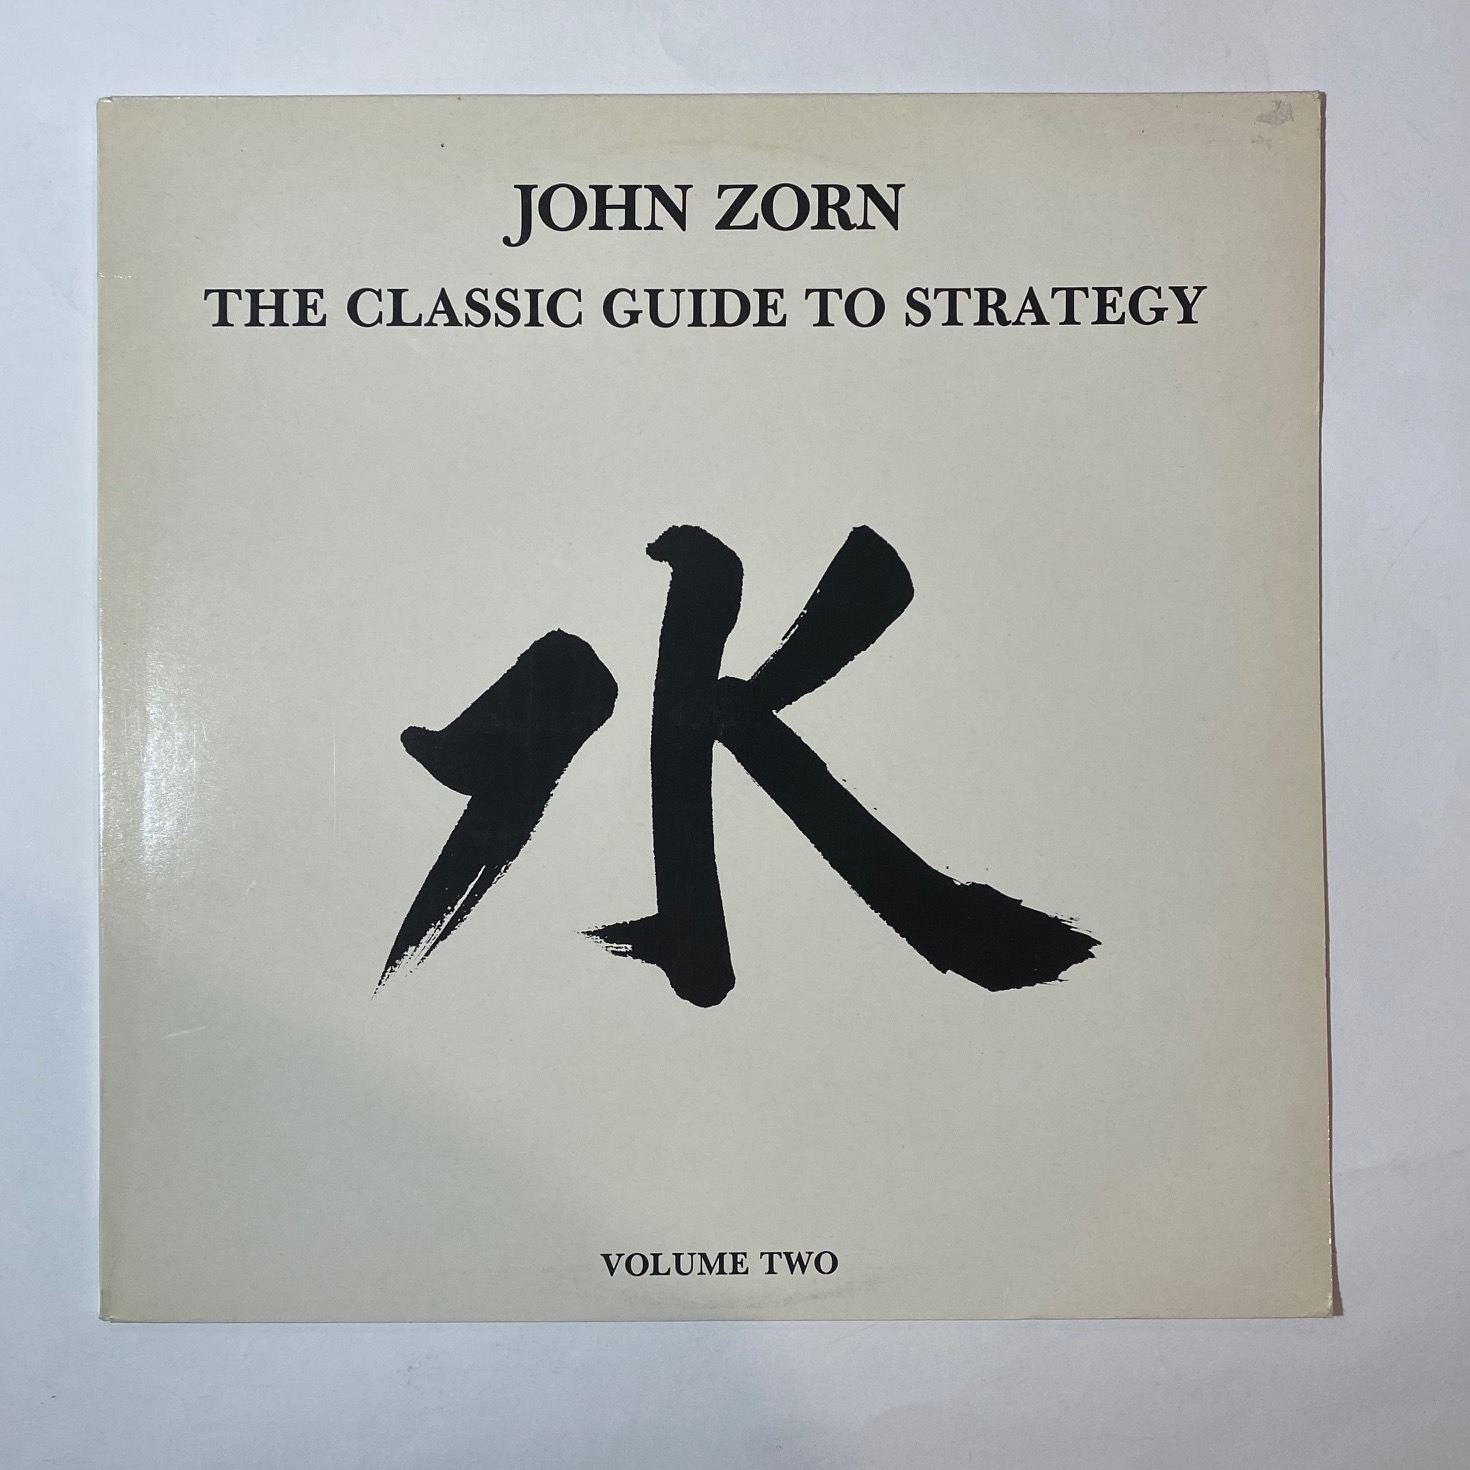 JOHN ZORN - The Classic Guide To Strategy Volume Two - LP